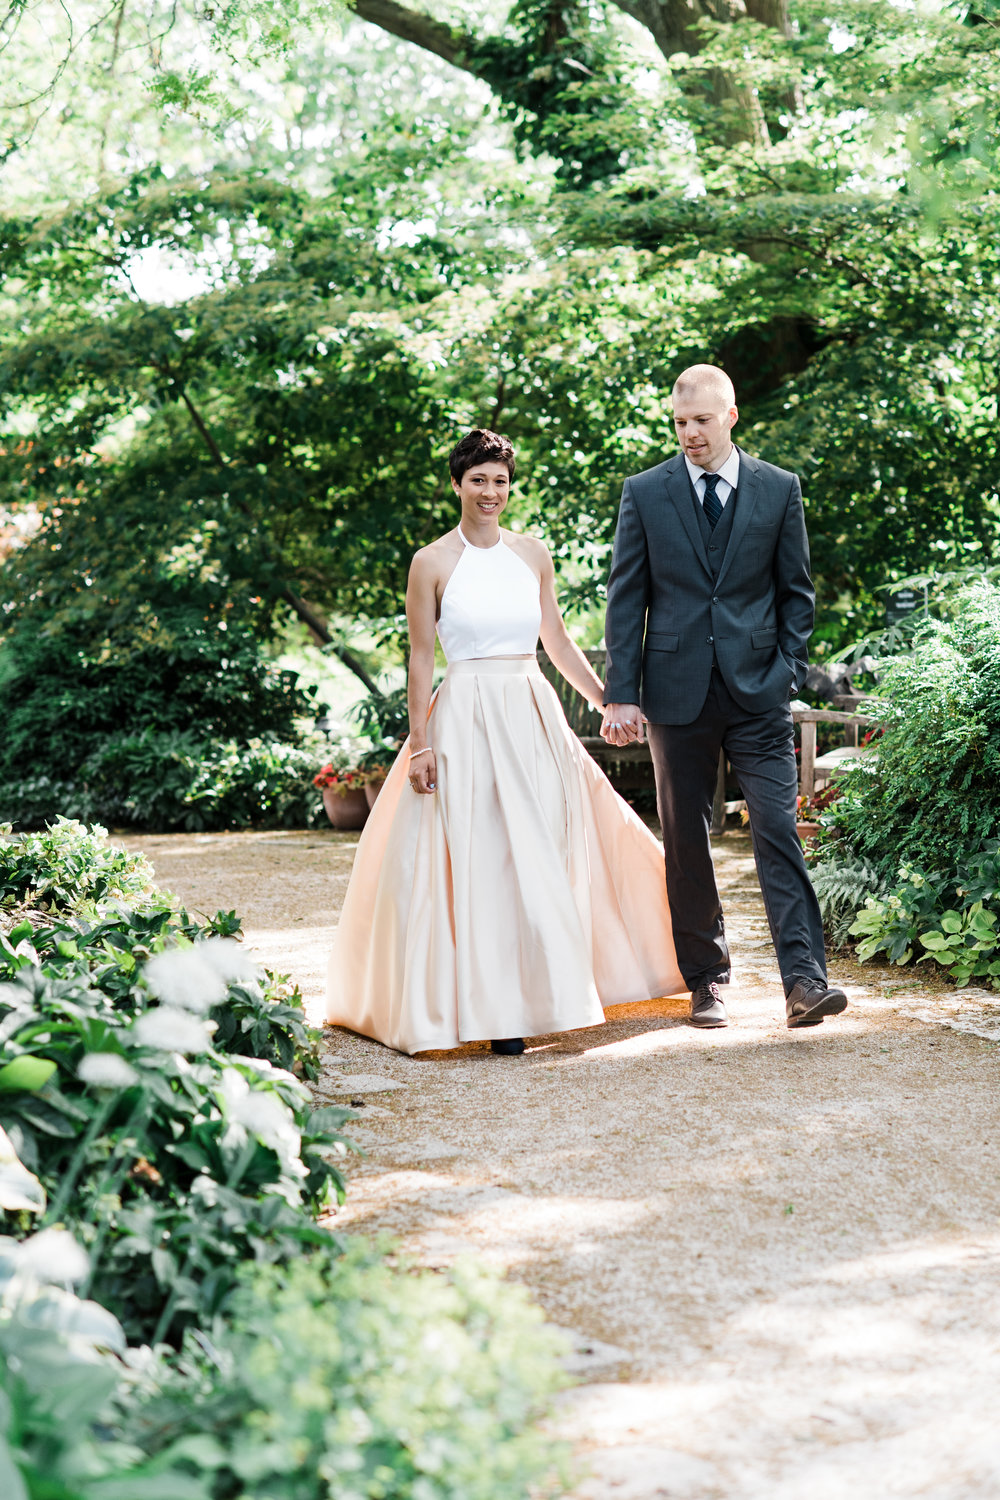 Bride and groom hold hands while walking down a garden path.